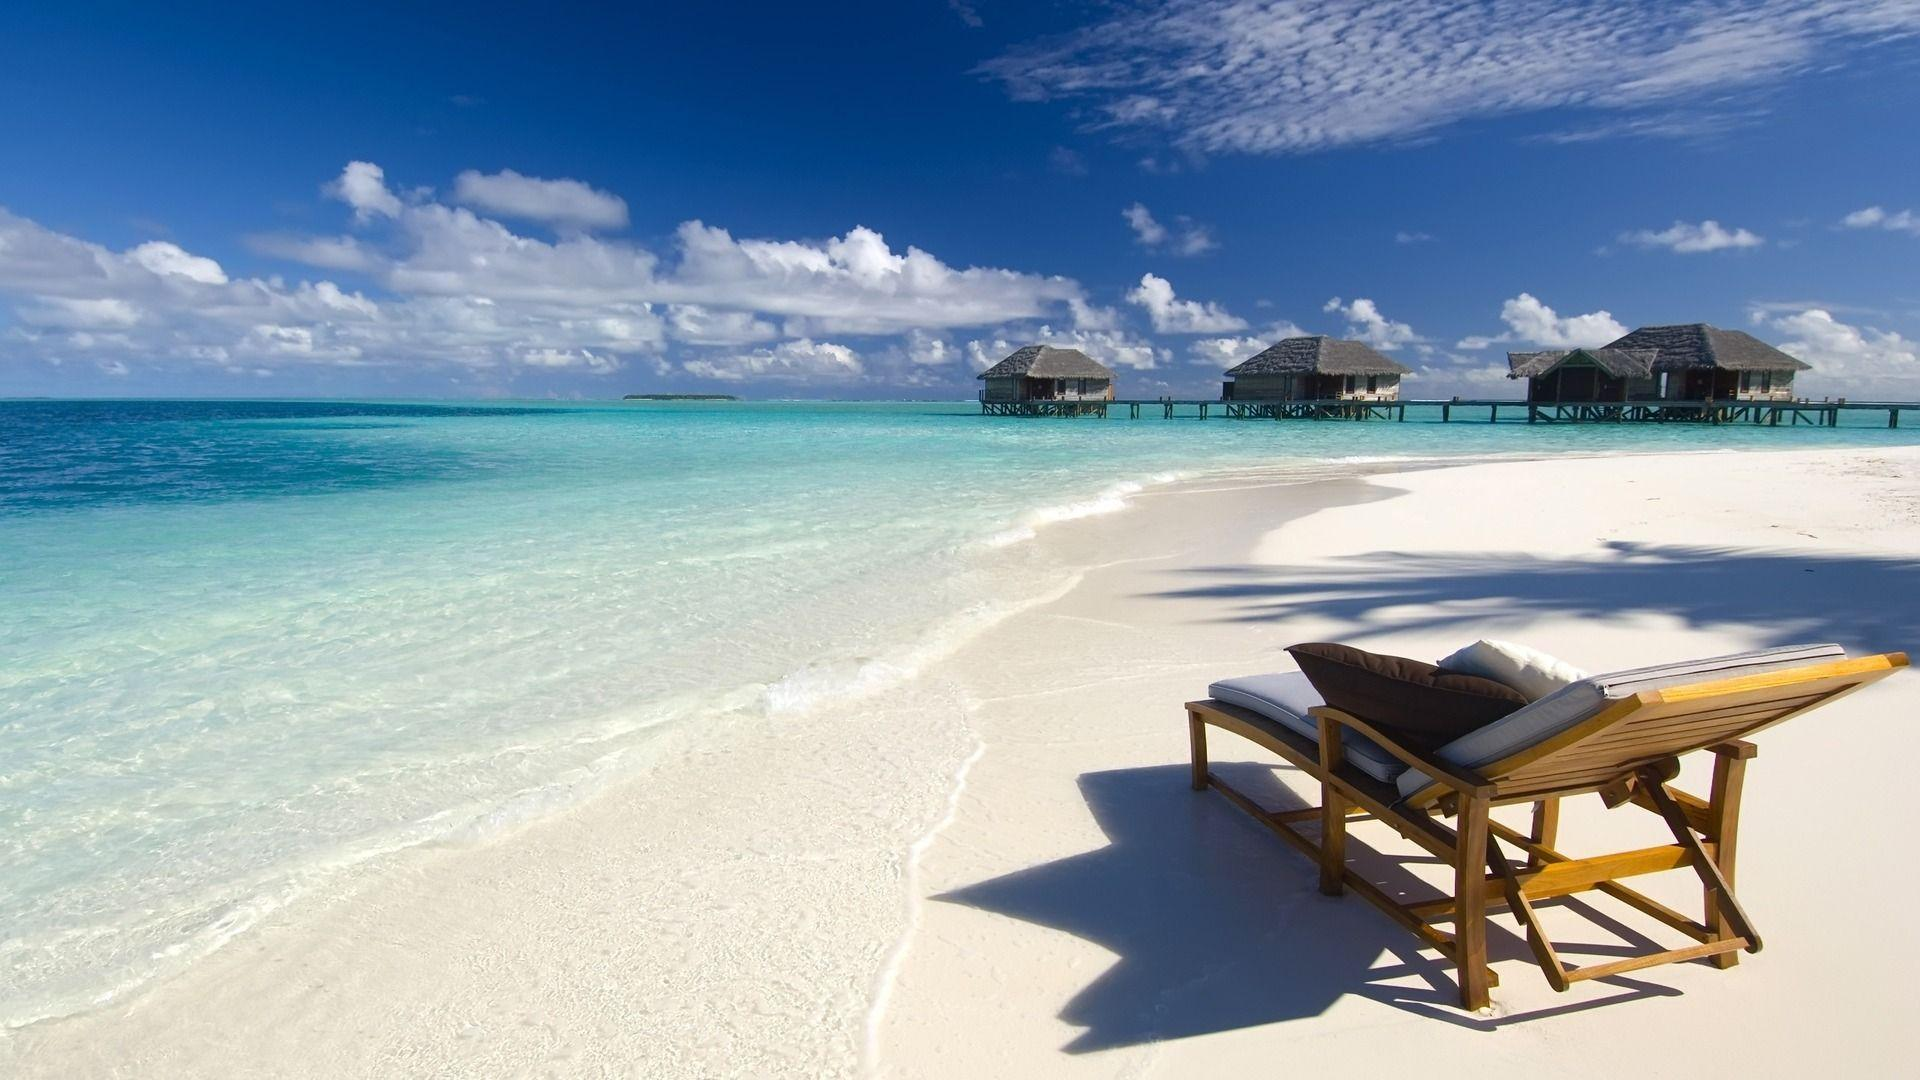 Beautiful Beach HD Wallpapers - HD Wallpapers Inn